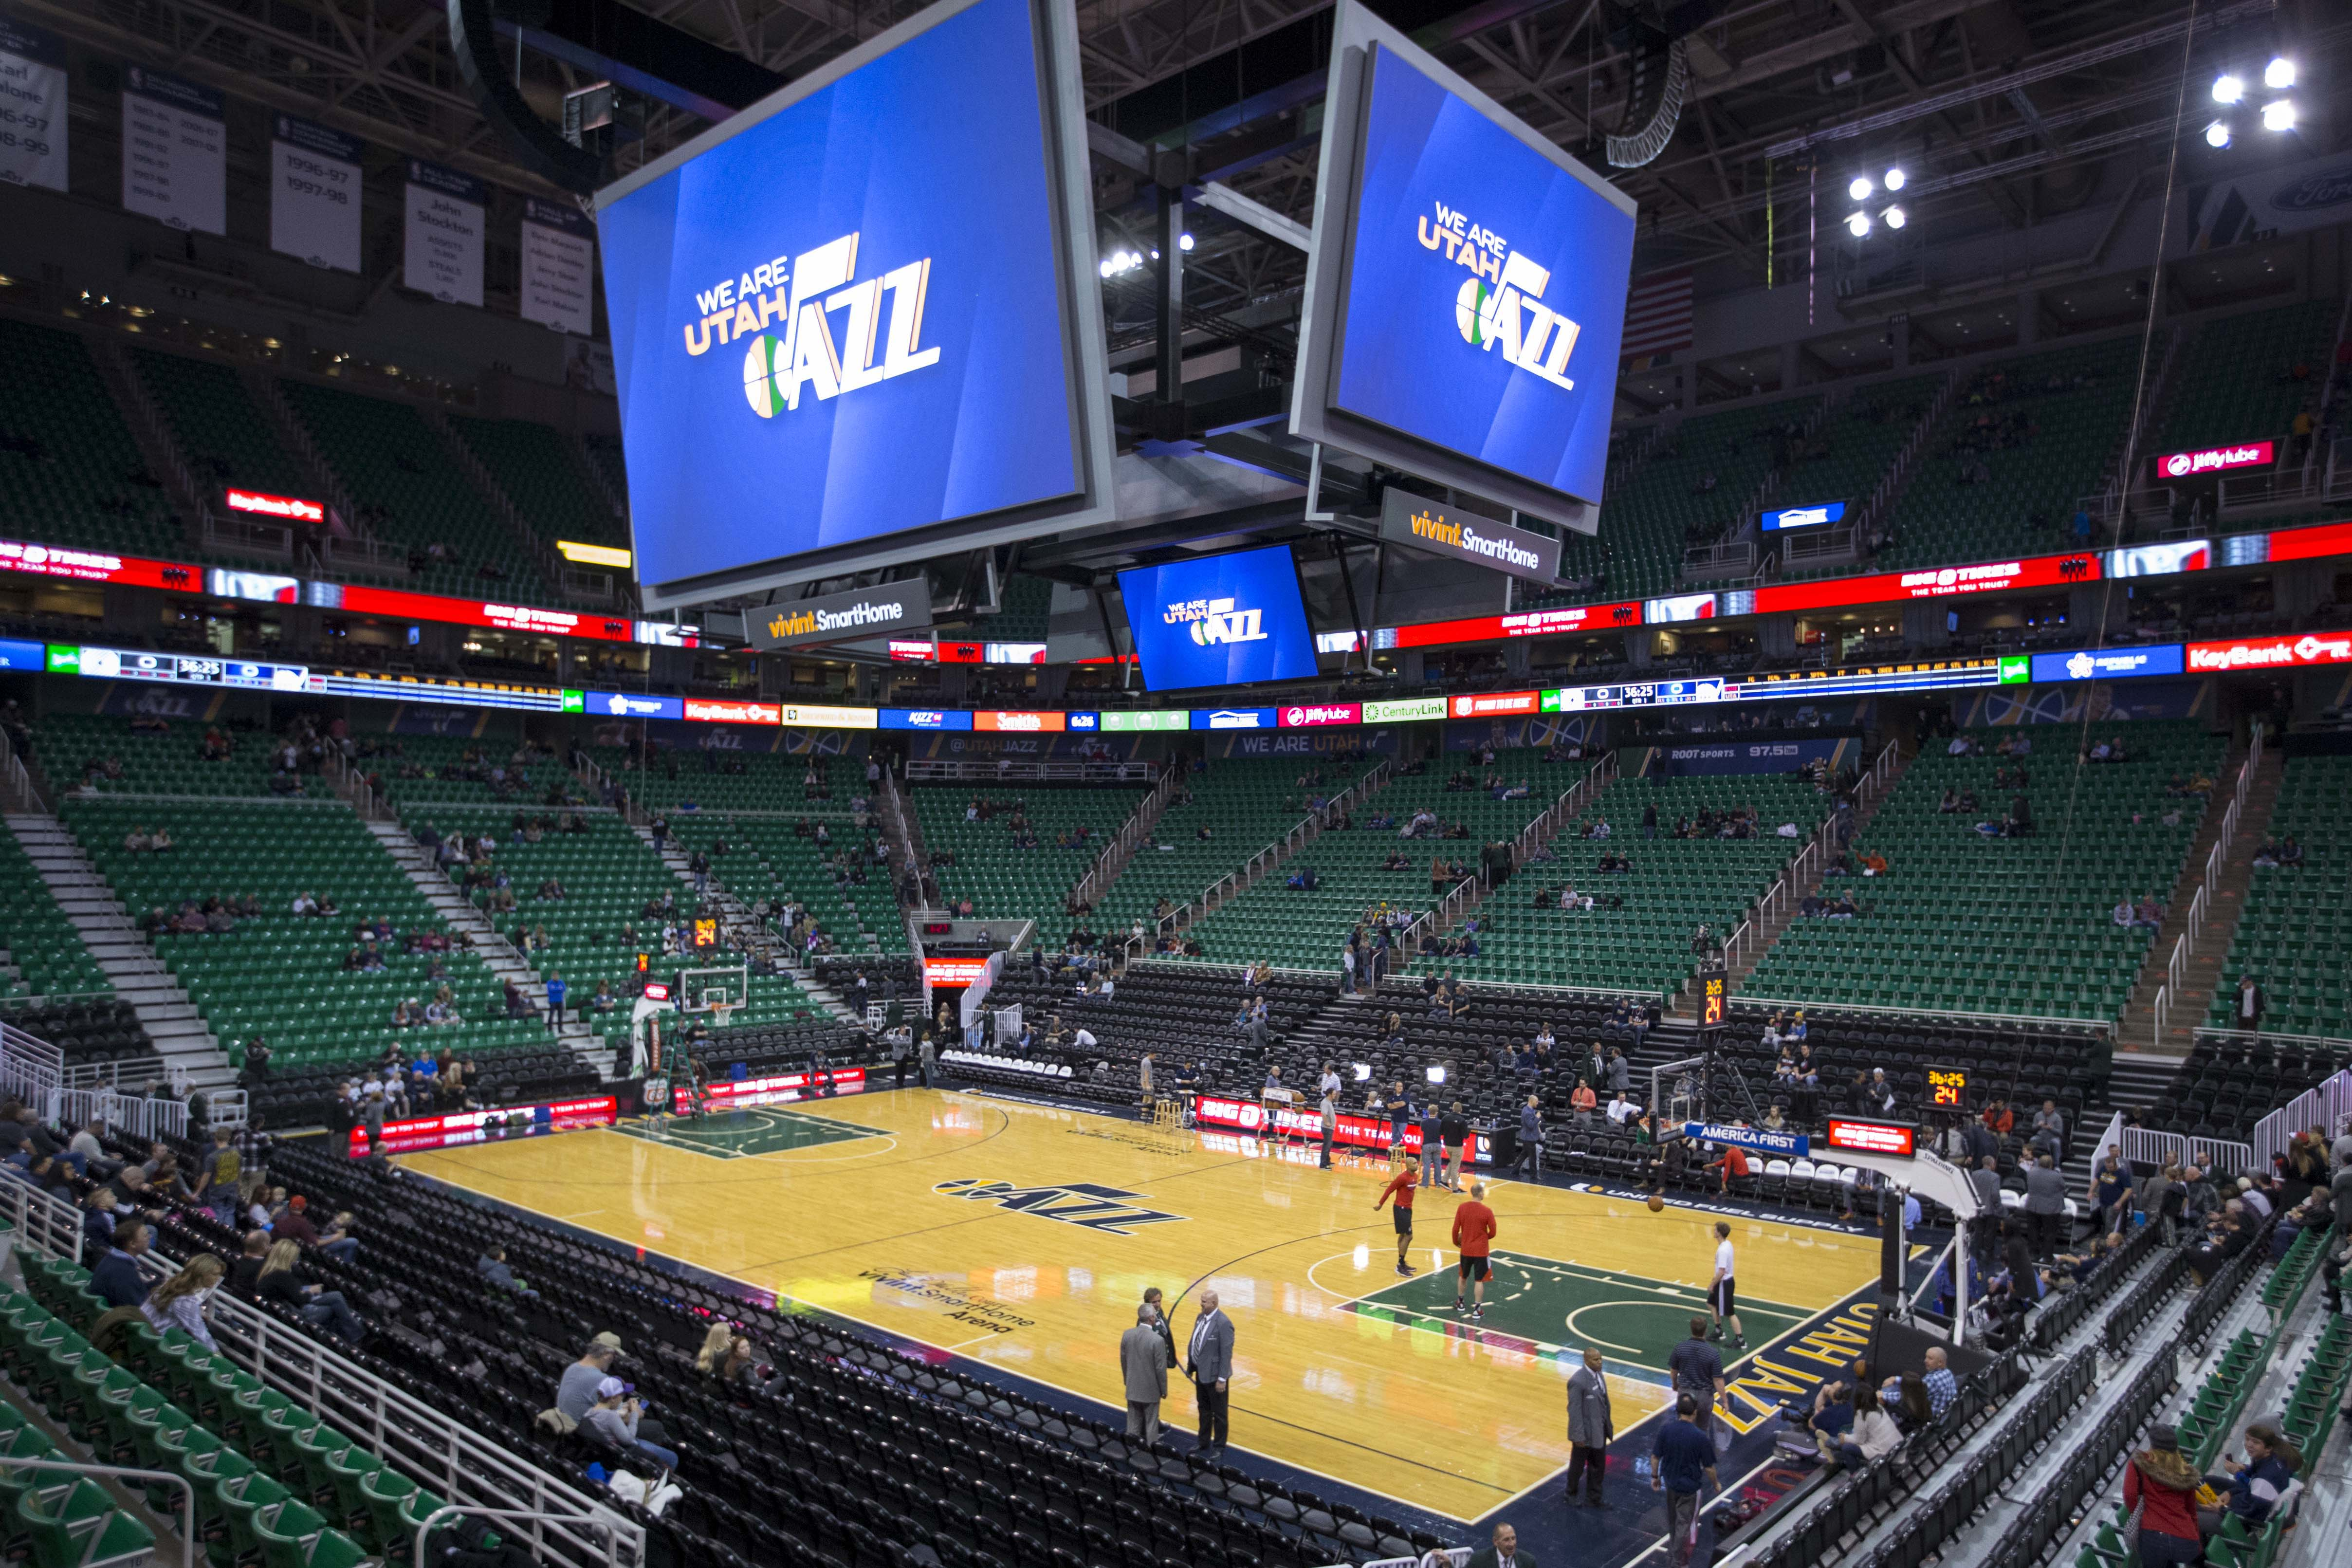 9029145-nba-portland-trail-blazers-at-utah-jazz